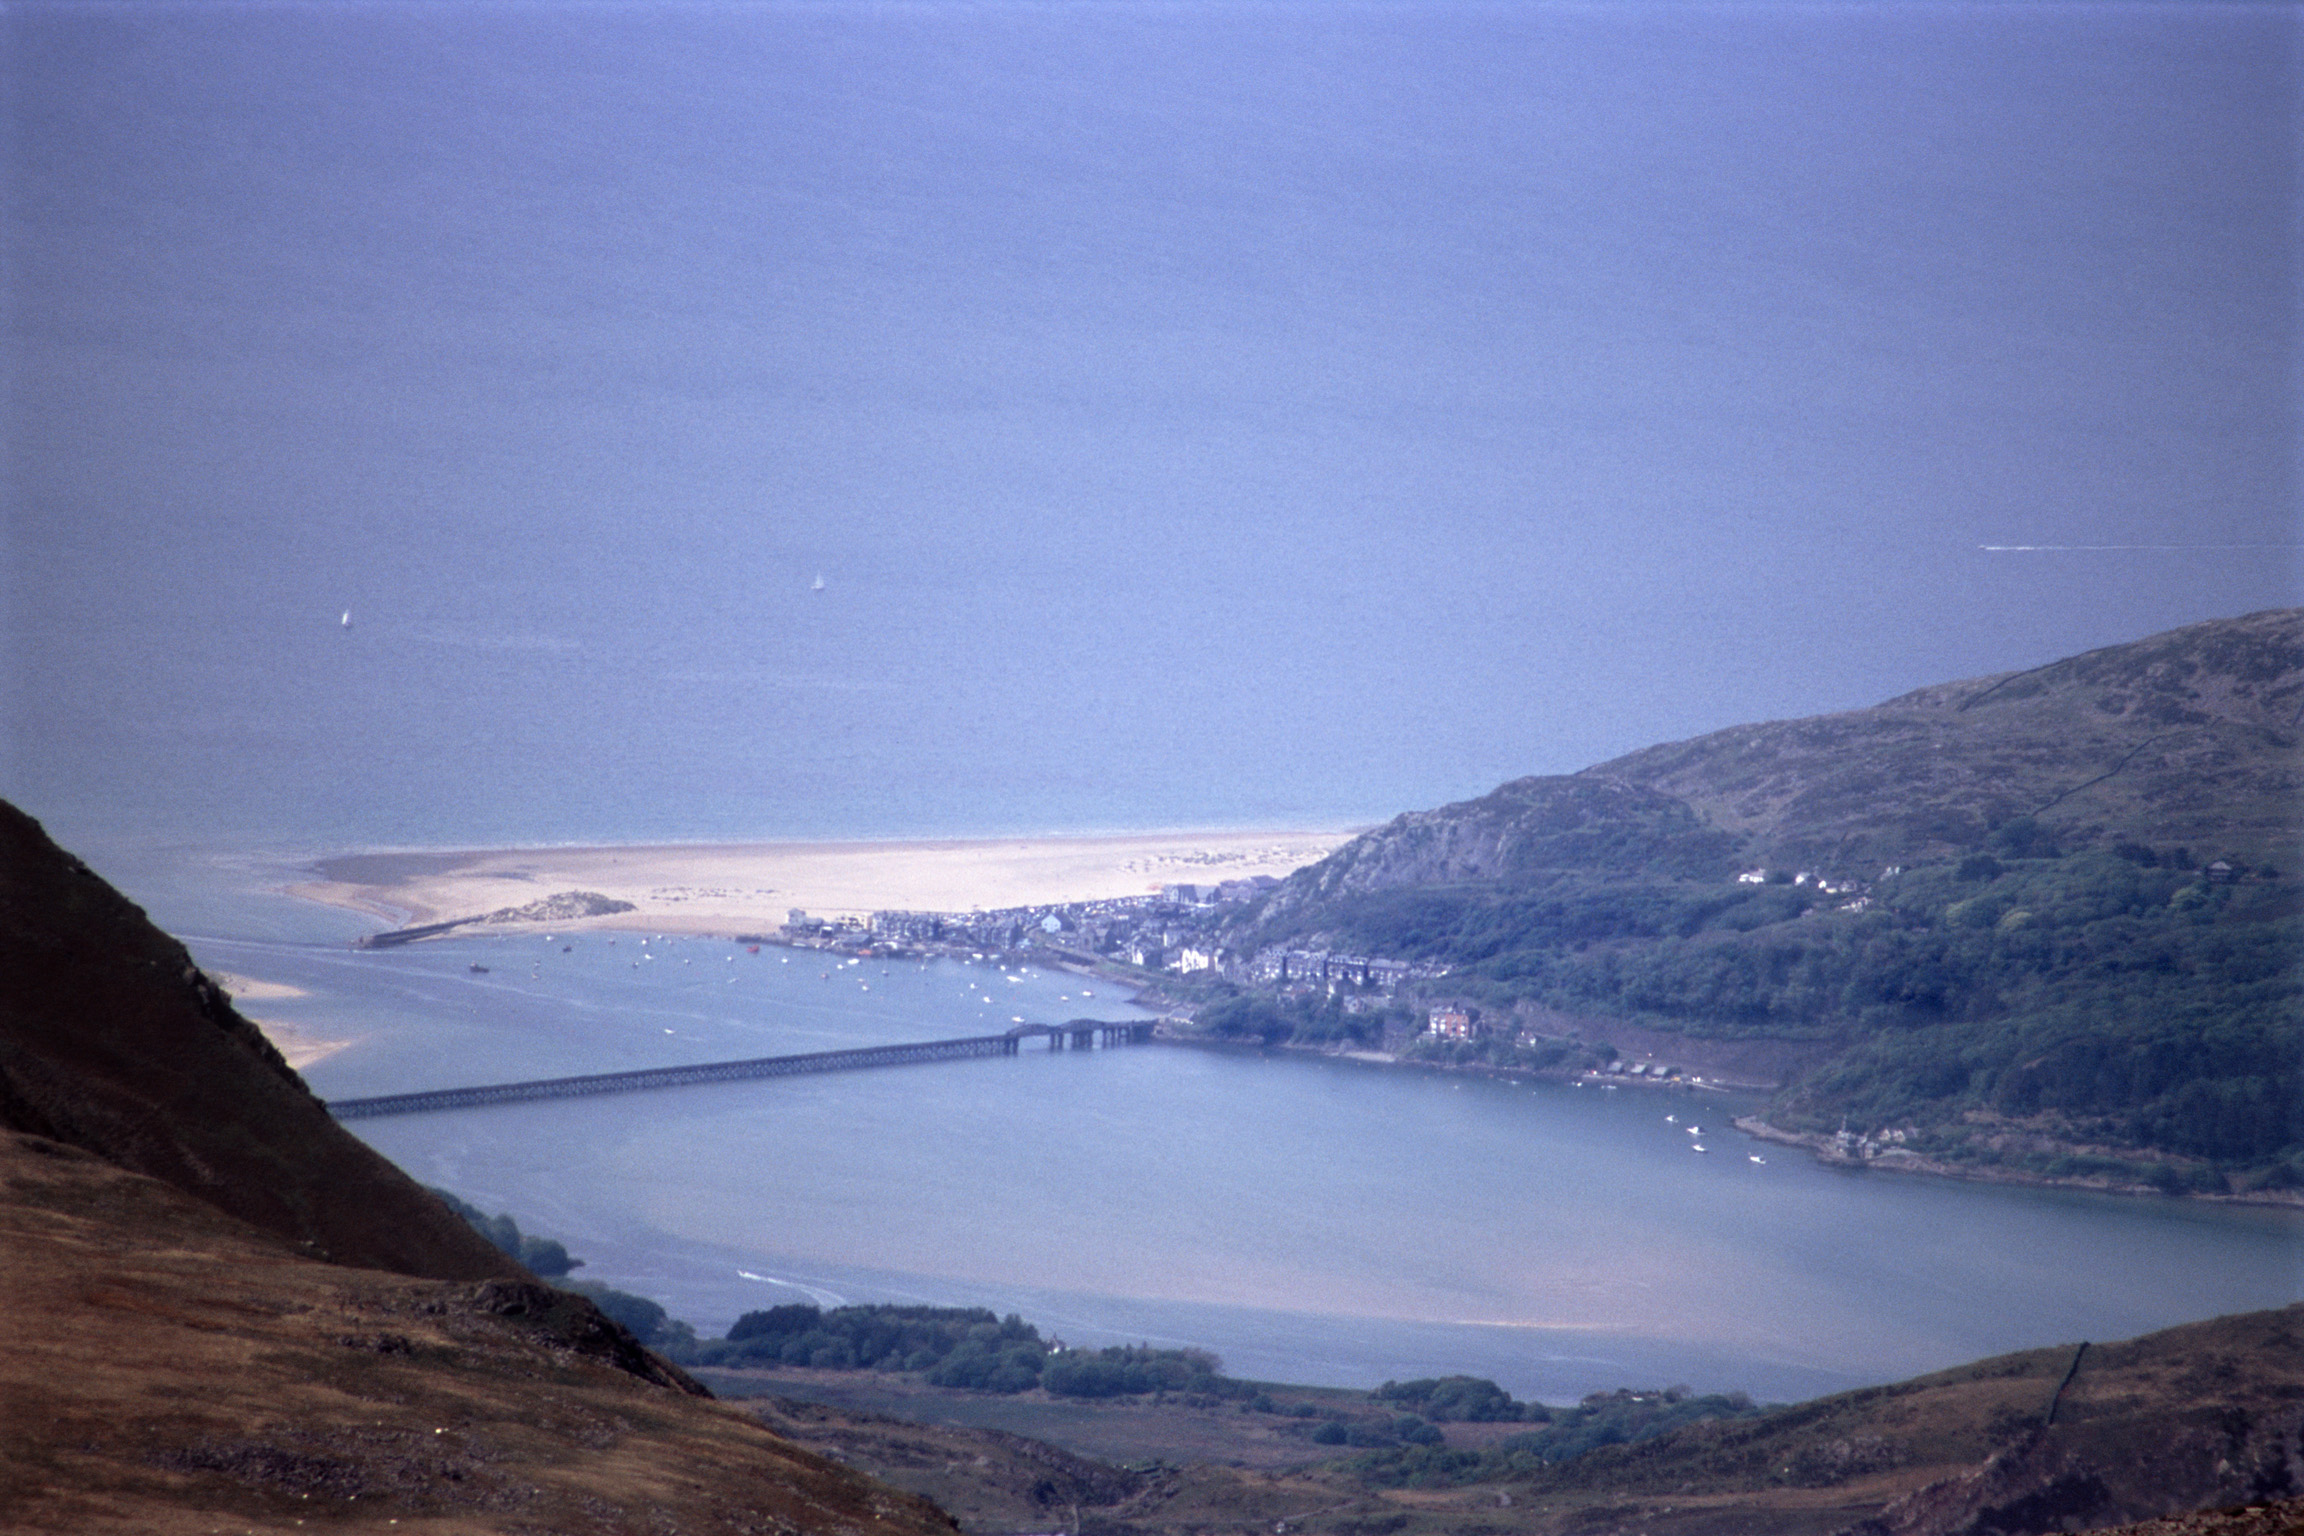 Overview of Coastal Barmouth with Beach and Estuary, Gwynedd, Wales